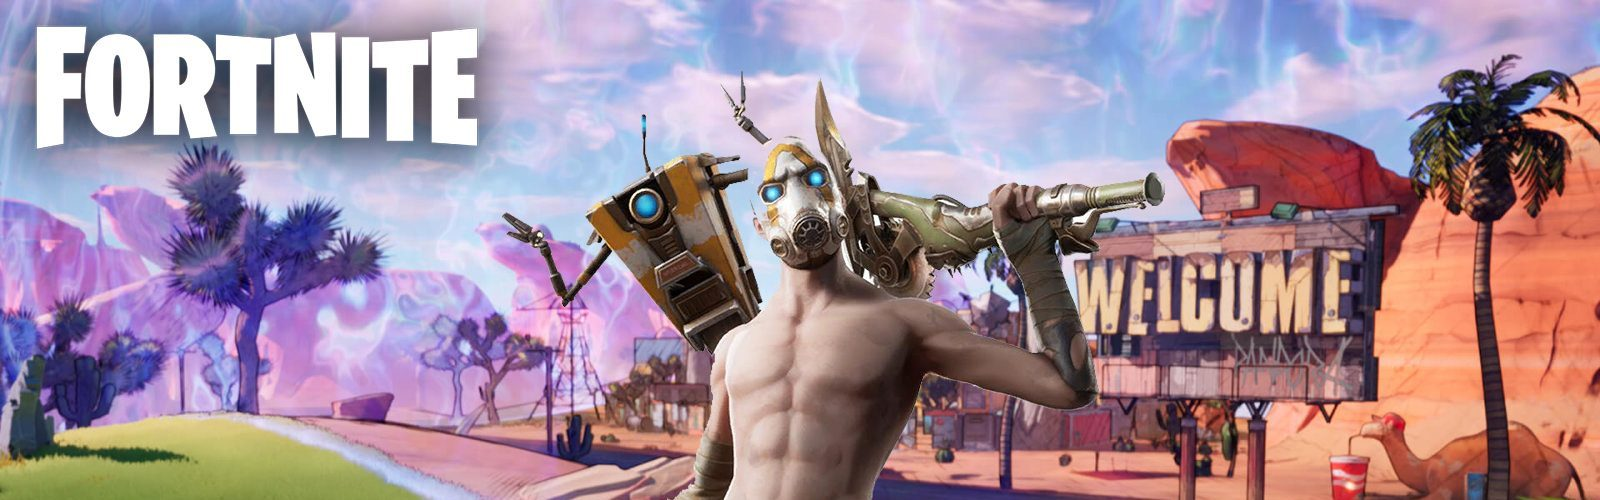 Fortnite - Psycho Bundle (DLC) Epic Games Key GLOBAL